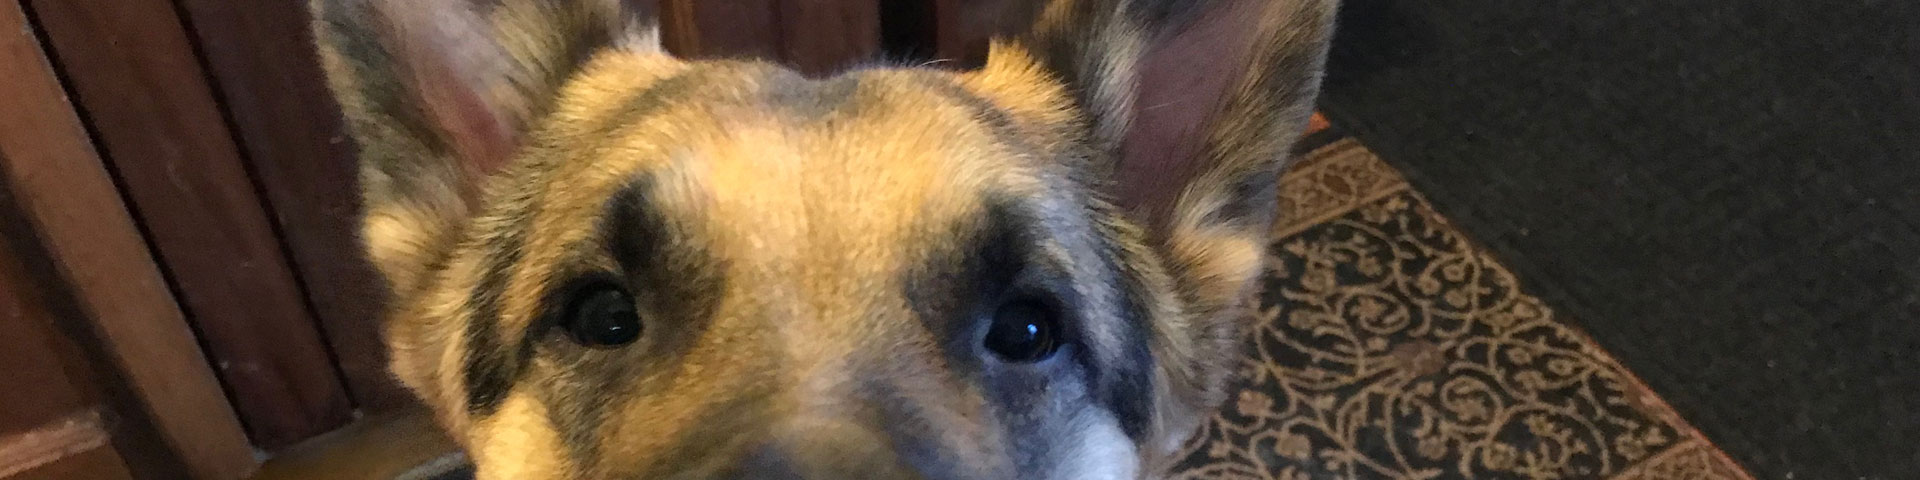 A German Shepherd puppy looks intently at the camera.